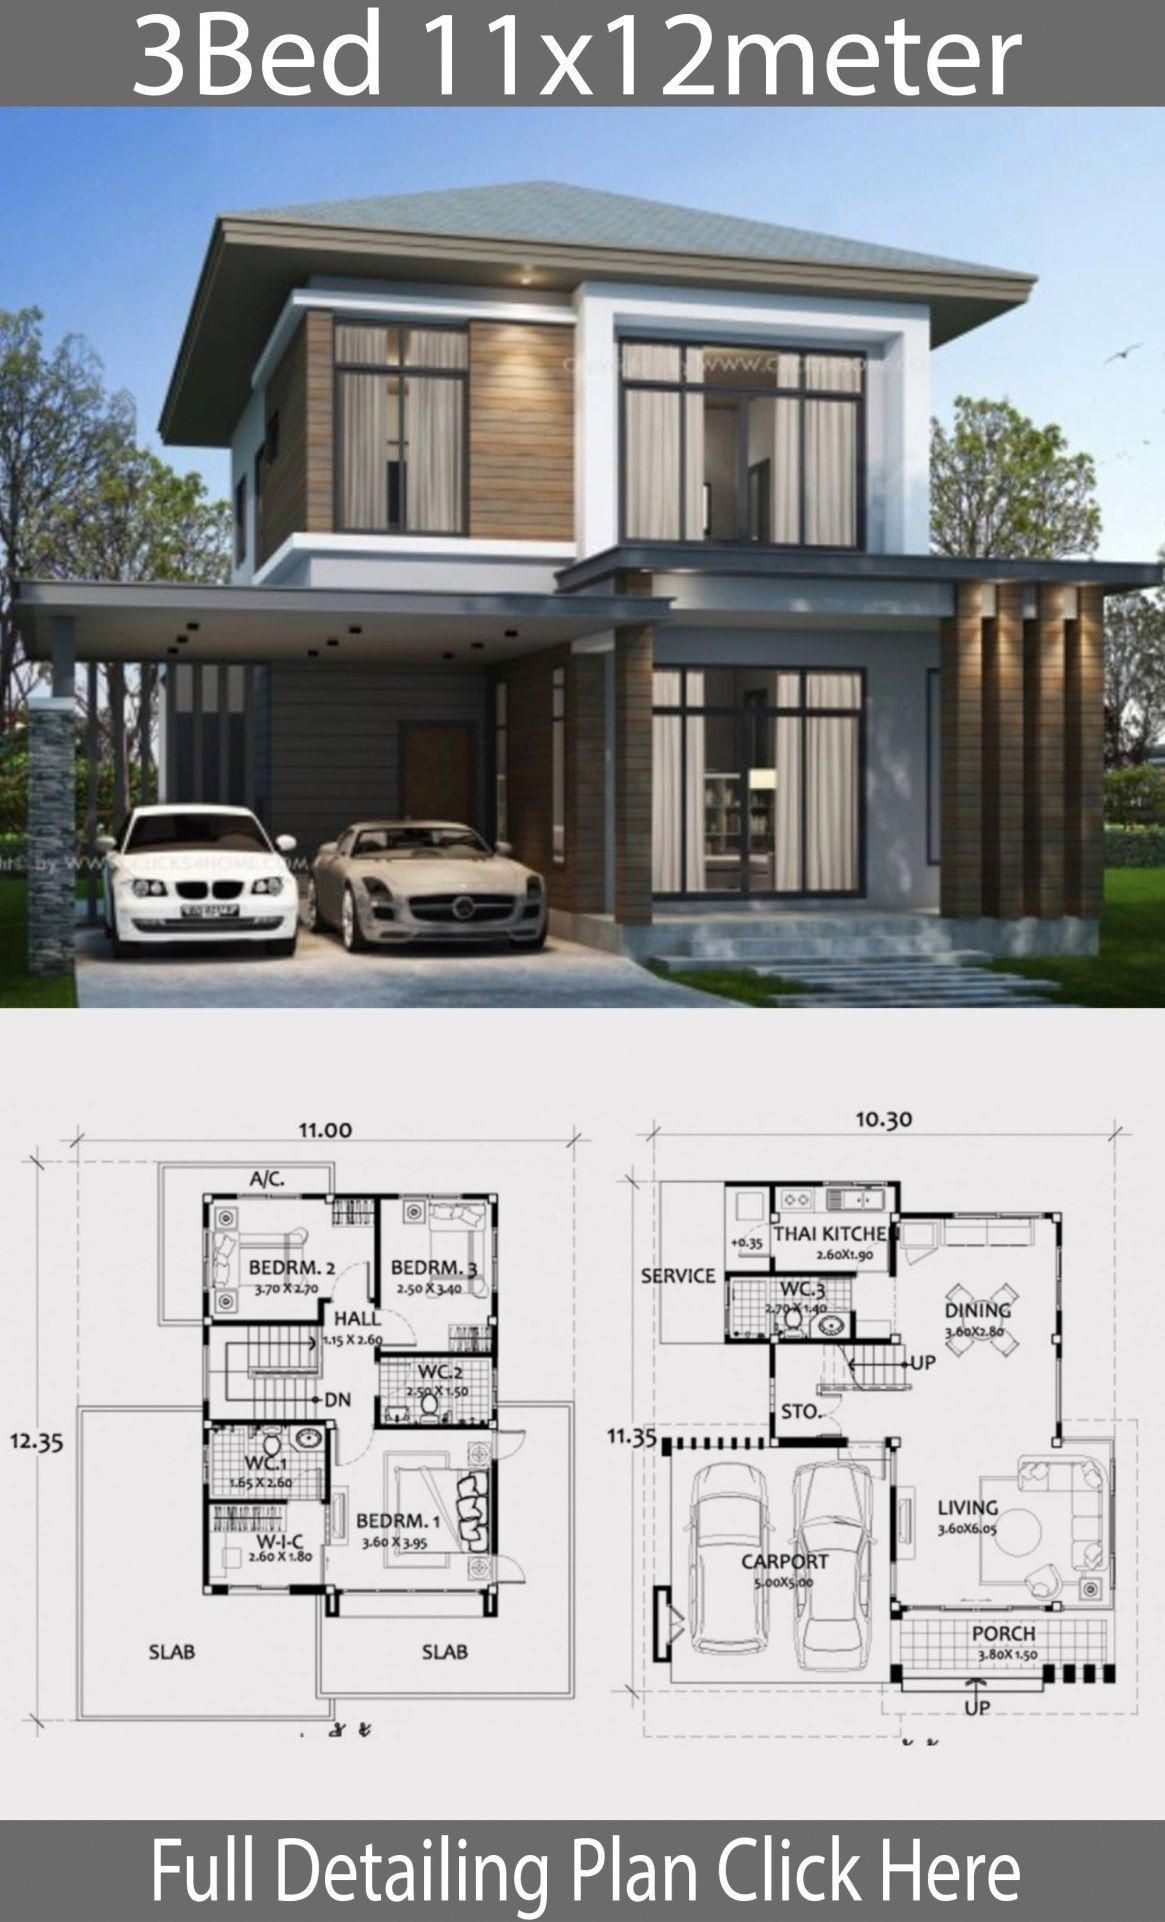 Pin By Kathy Wong On Home Design Home Building Design Modern House Design Home Design Plans